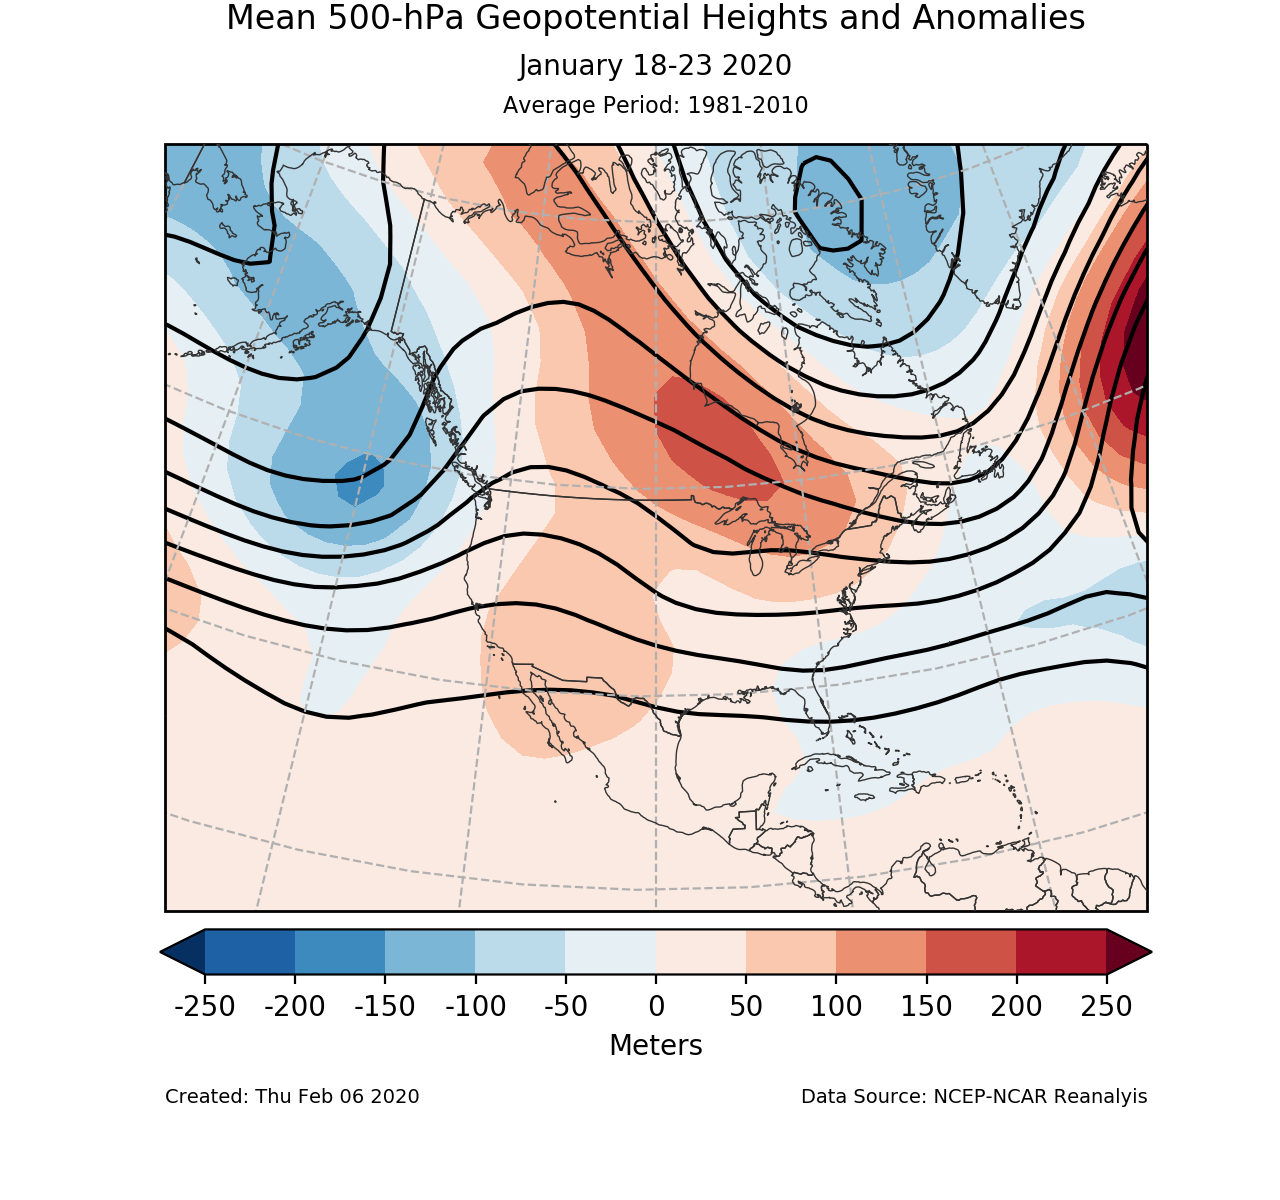 500-mb circulation anomalies for North America for January 18-23 2020